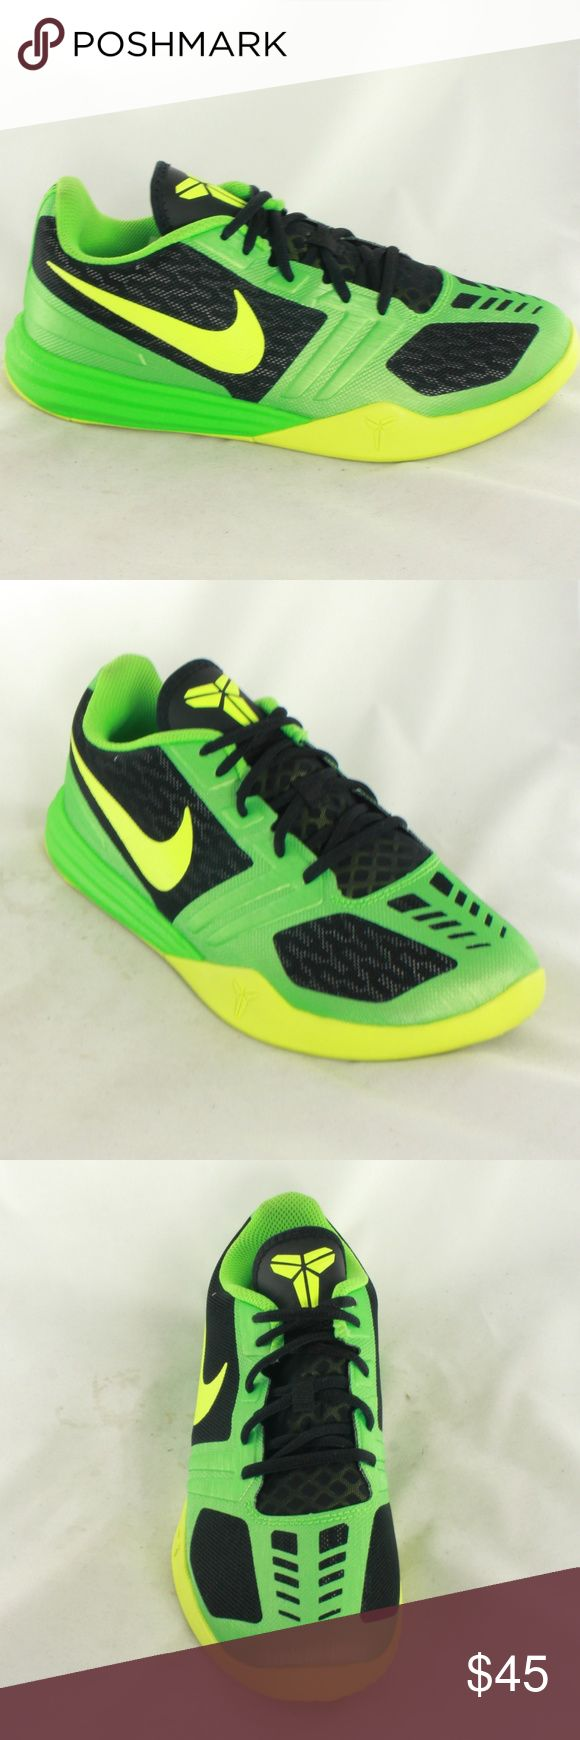 Like New Nike KB Mentality Basketball Shoes Literally like new all around, Kobe Bryant series low top basketball sneakers. Extremely light, perfect for the agile shooter, whether you're driving to the hoop or making room to get your shot off.  Size 8 Nike Shoes Athletic Shoes